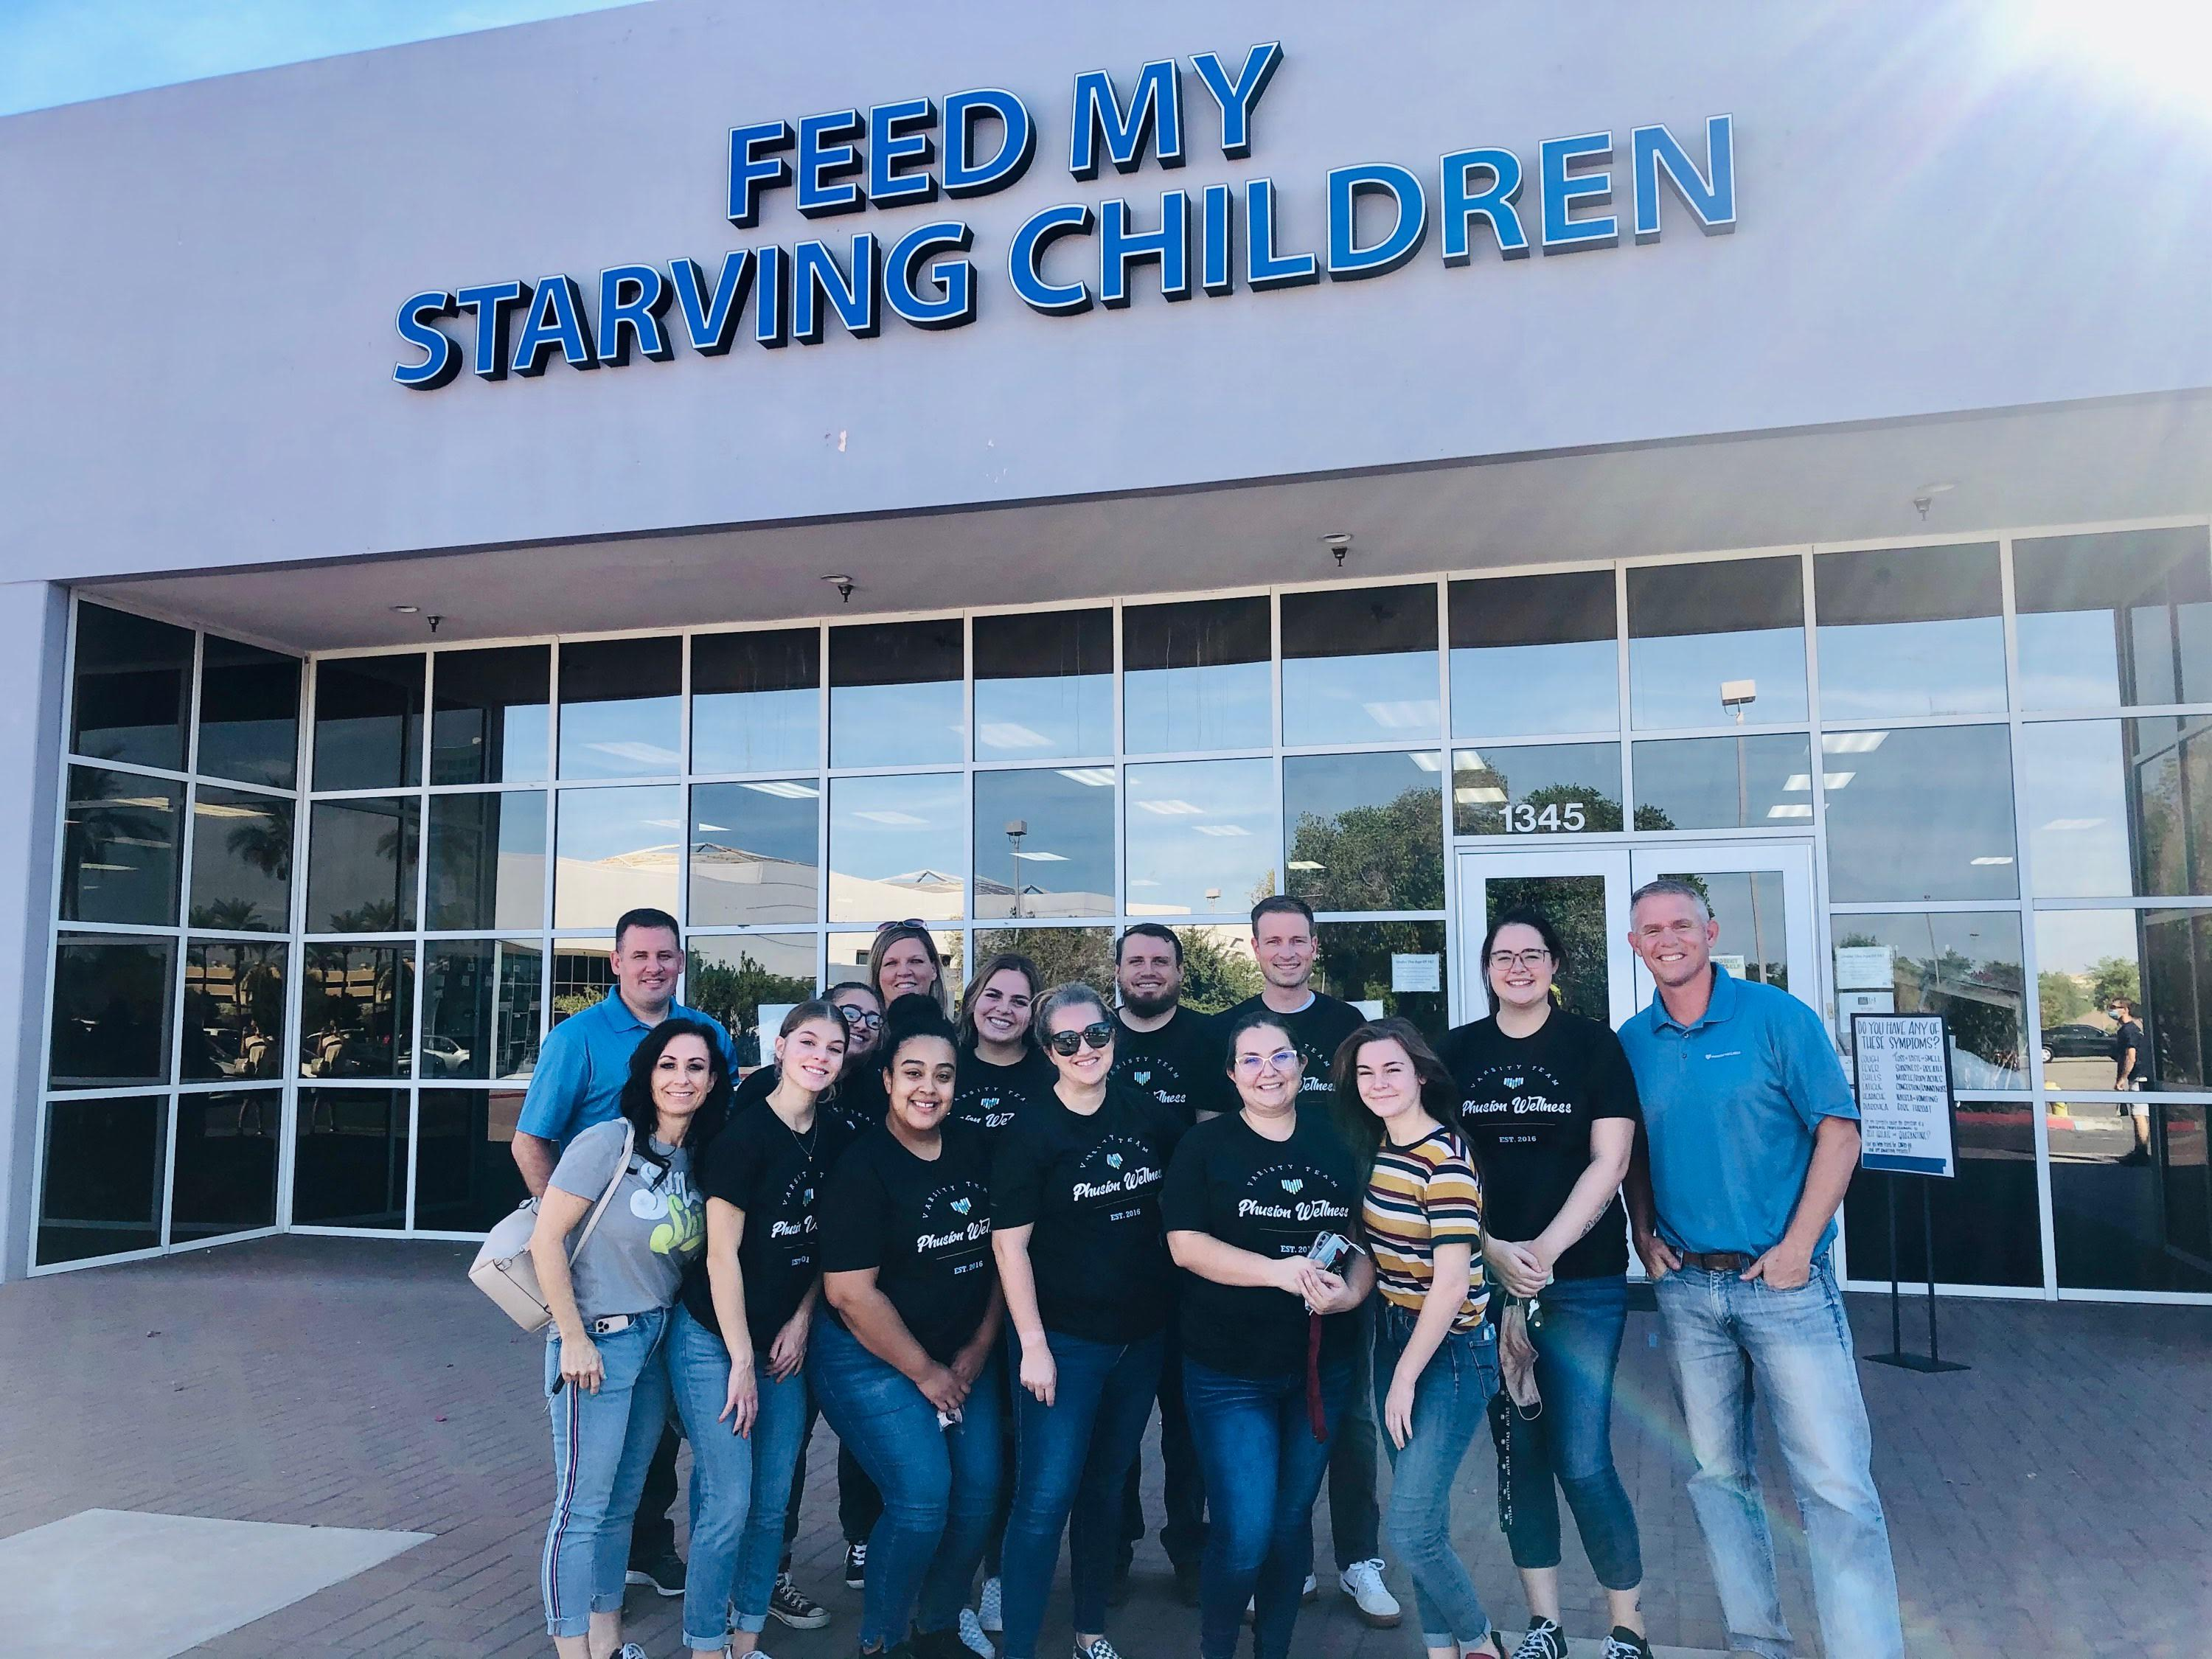 Phusion Wellness team standing outside feed my starving children building